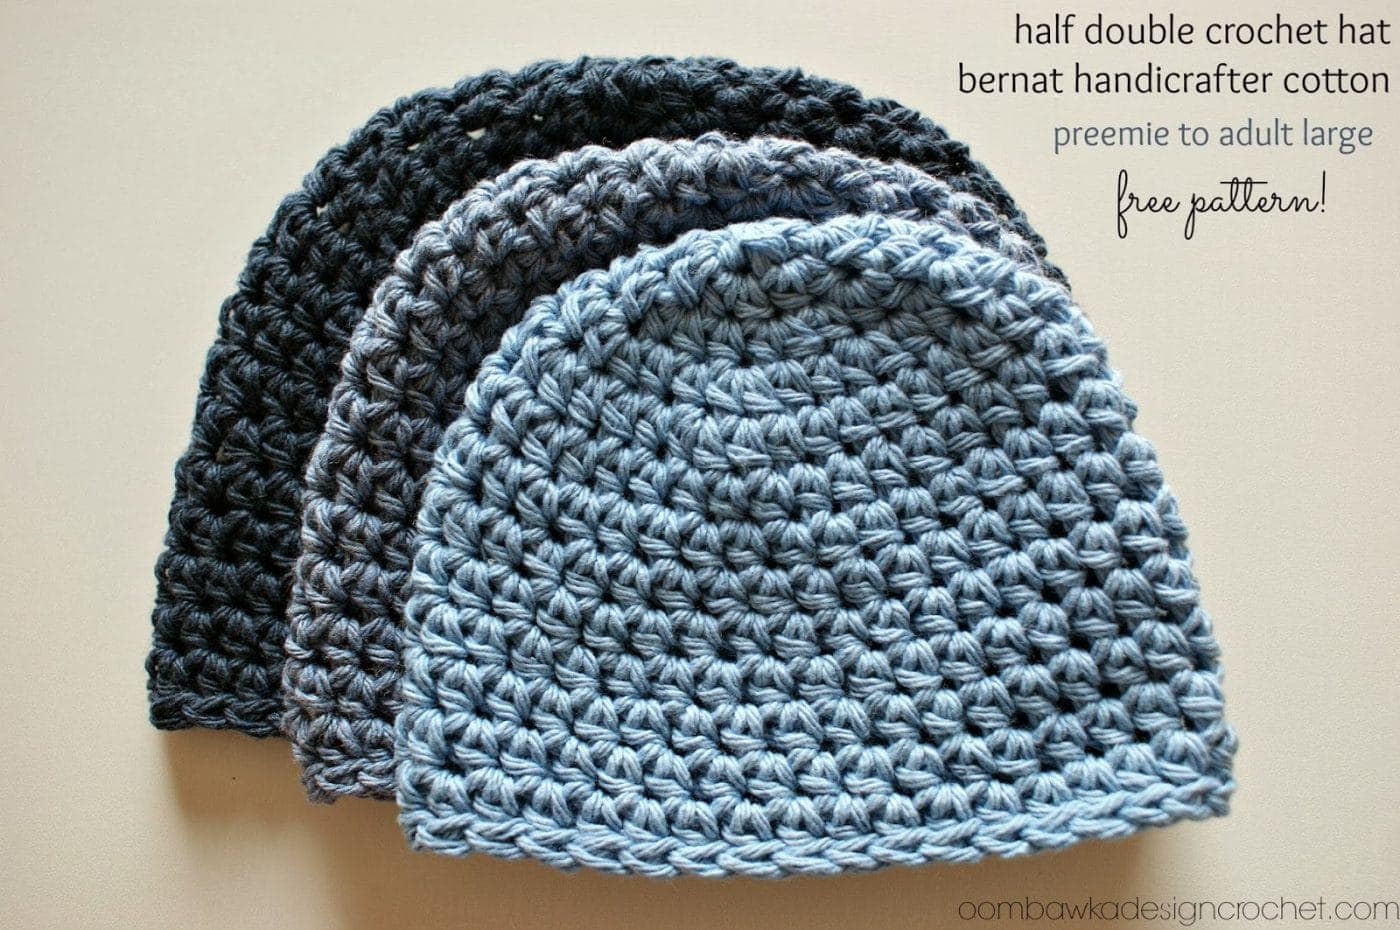 Crochet Patterns Hats For Adults : ... Double Crochet Hat Pattern #2 Free Pattern ? Oombawka Design Crochet